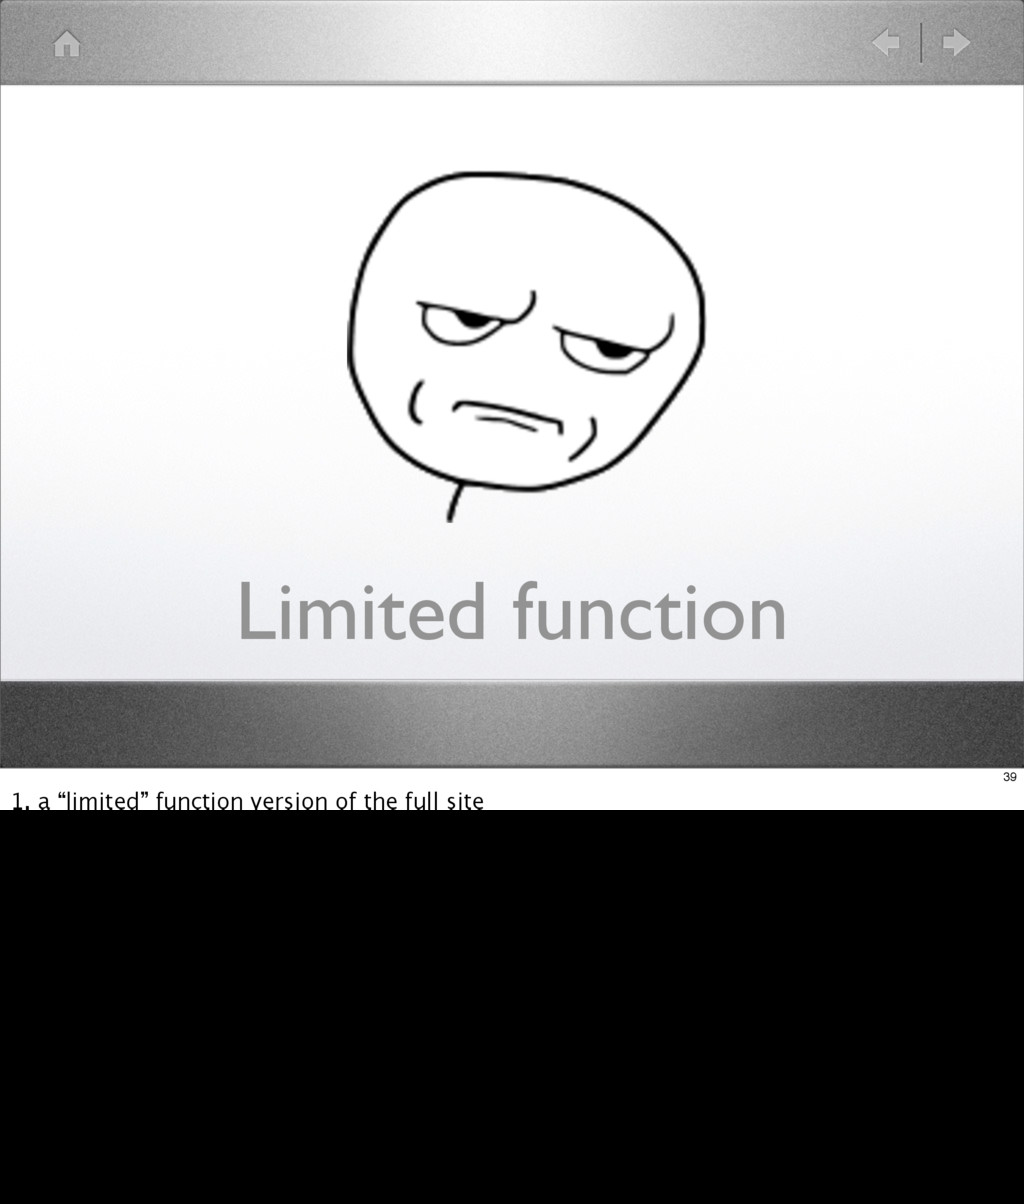 """Limited function 39 1. a """"limited"""" function ver..."""